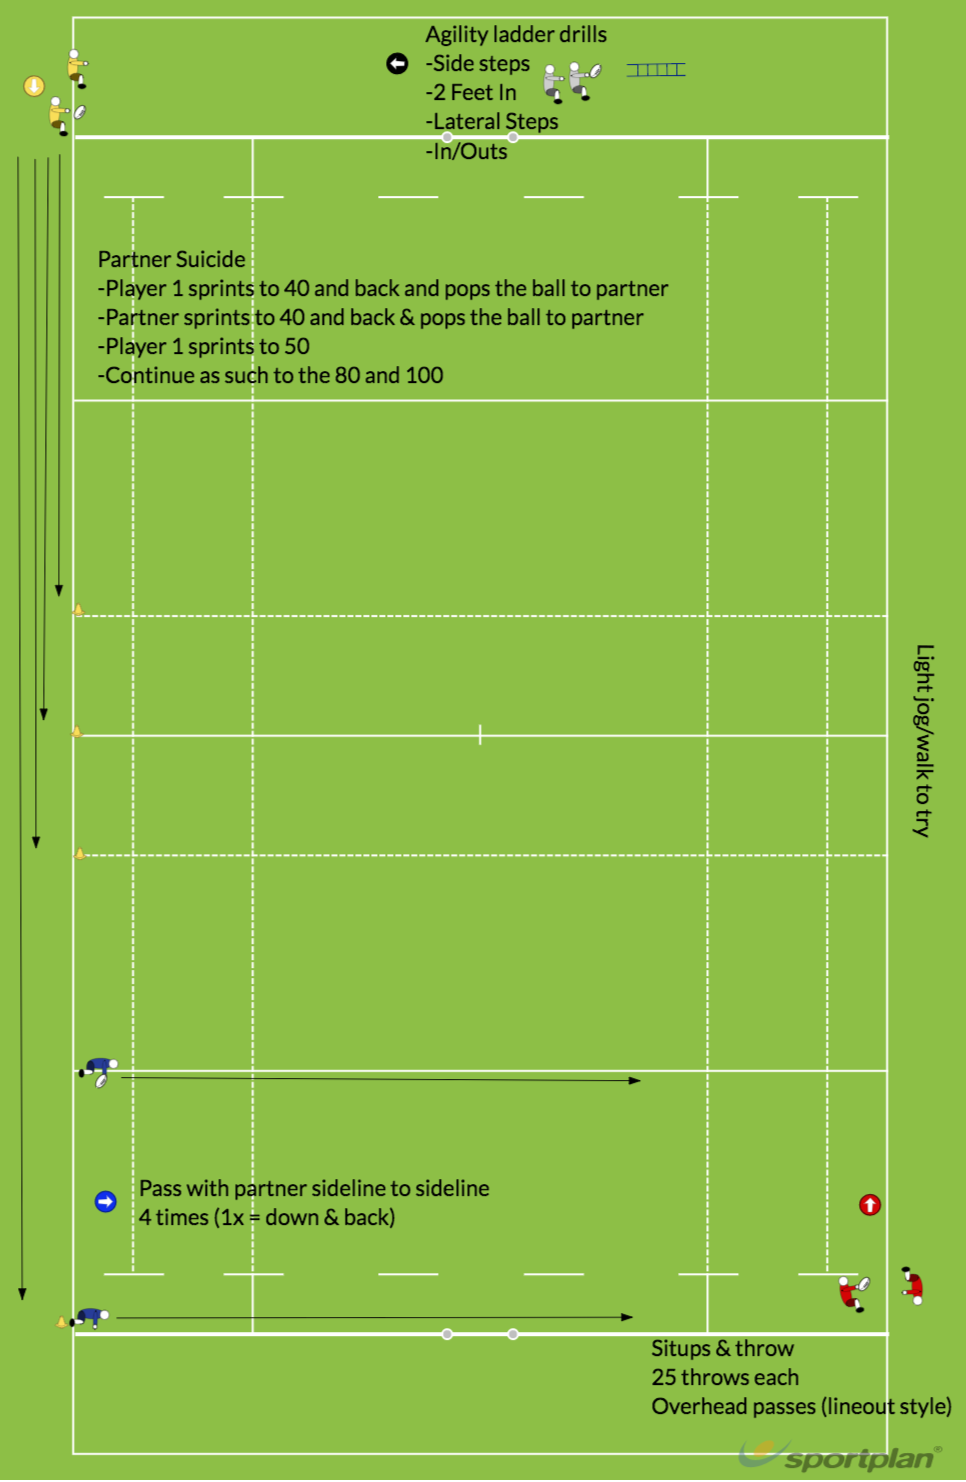 Partner ConditioningAgility & Running SkillsRugby Drills Coaching